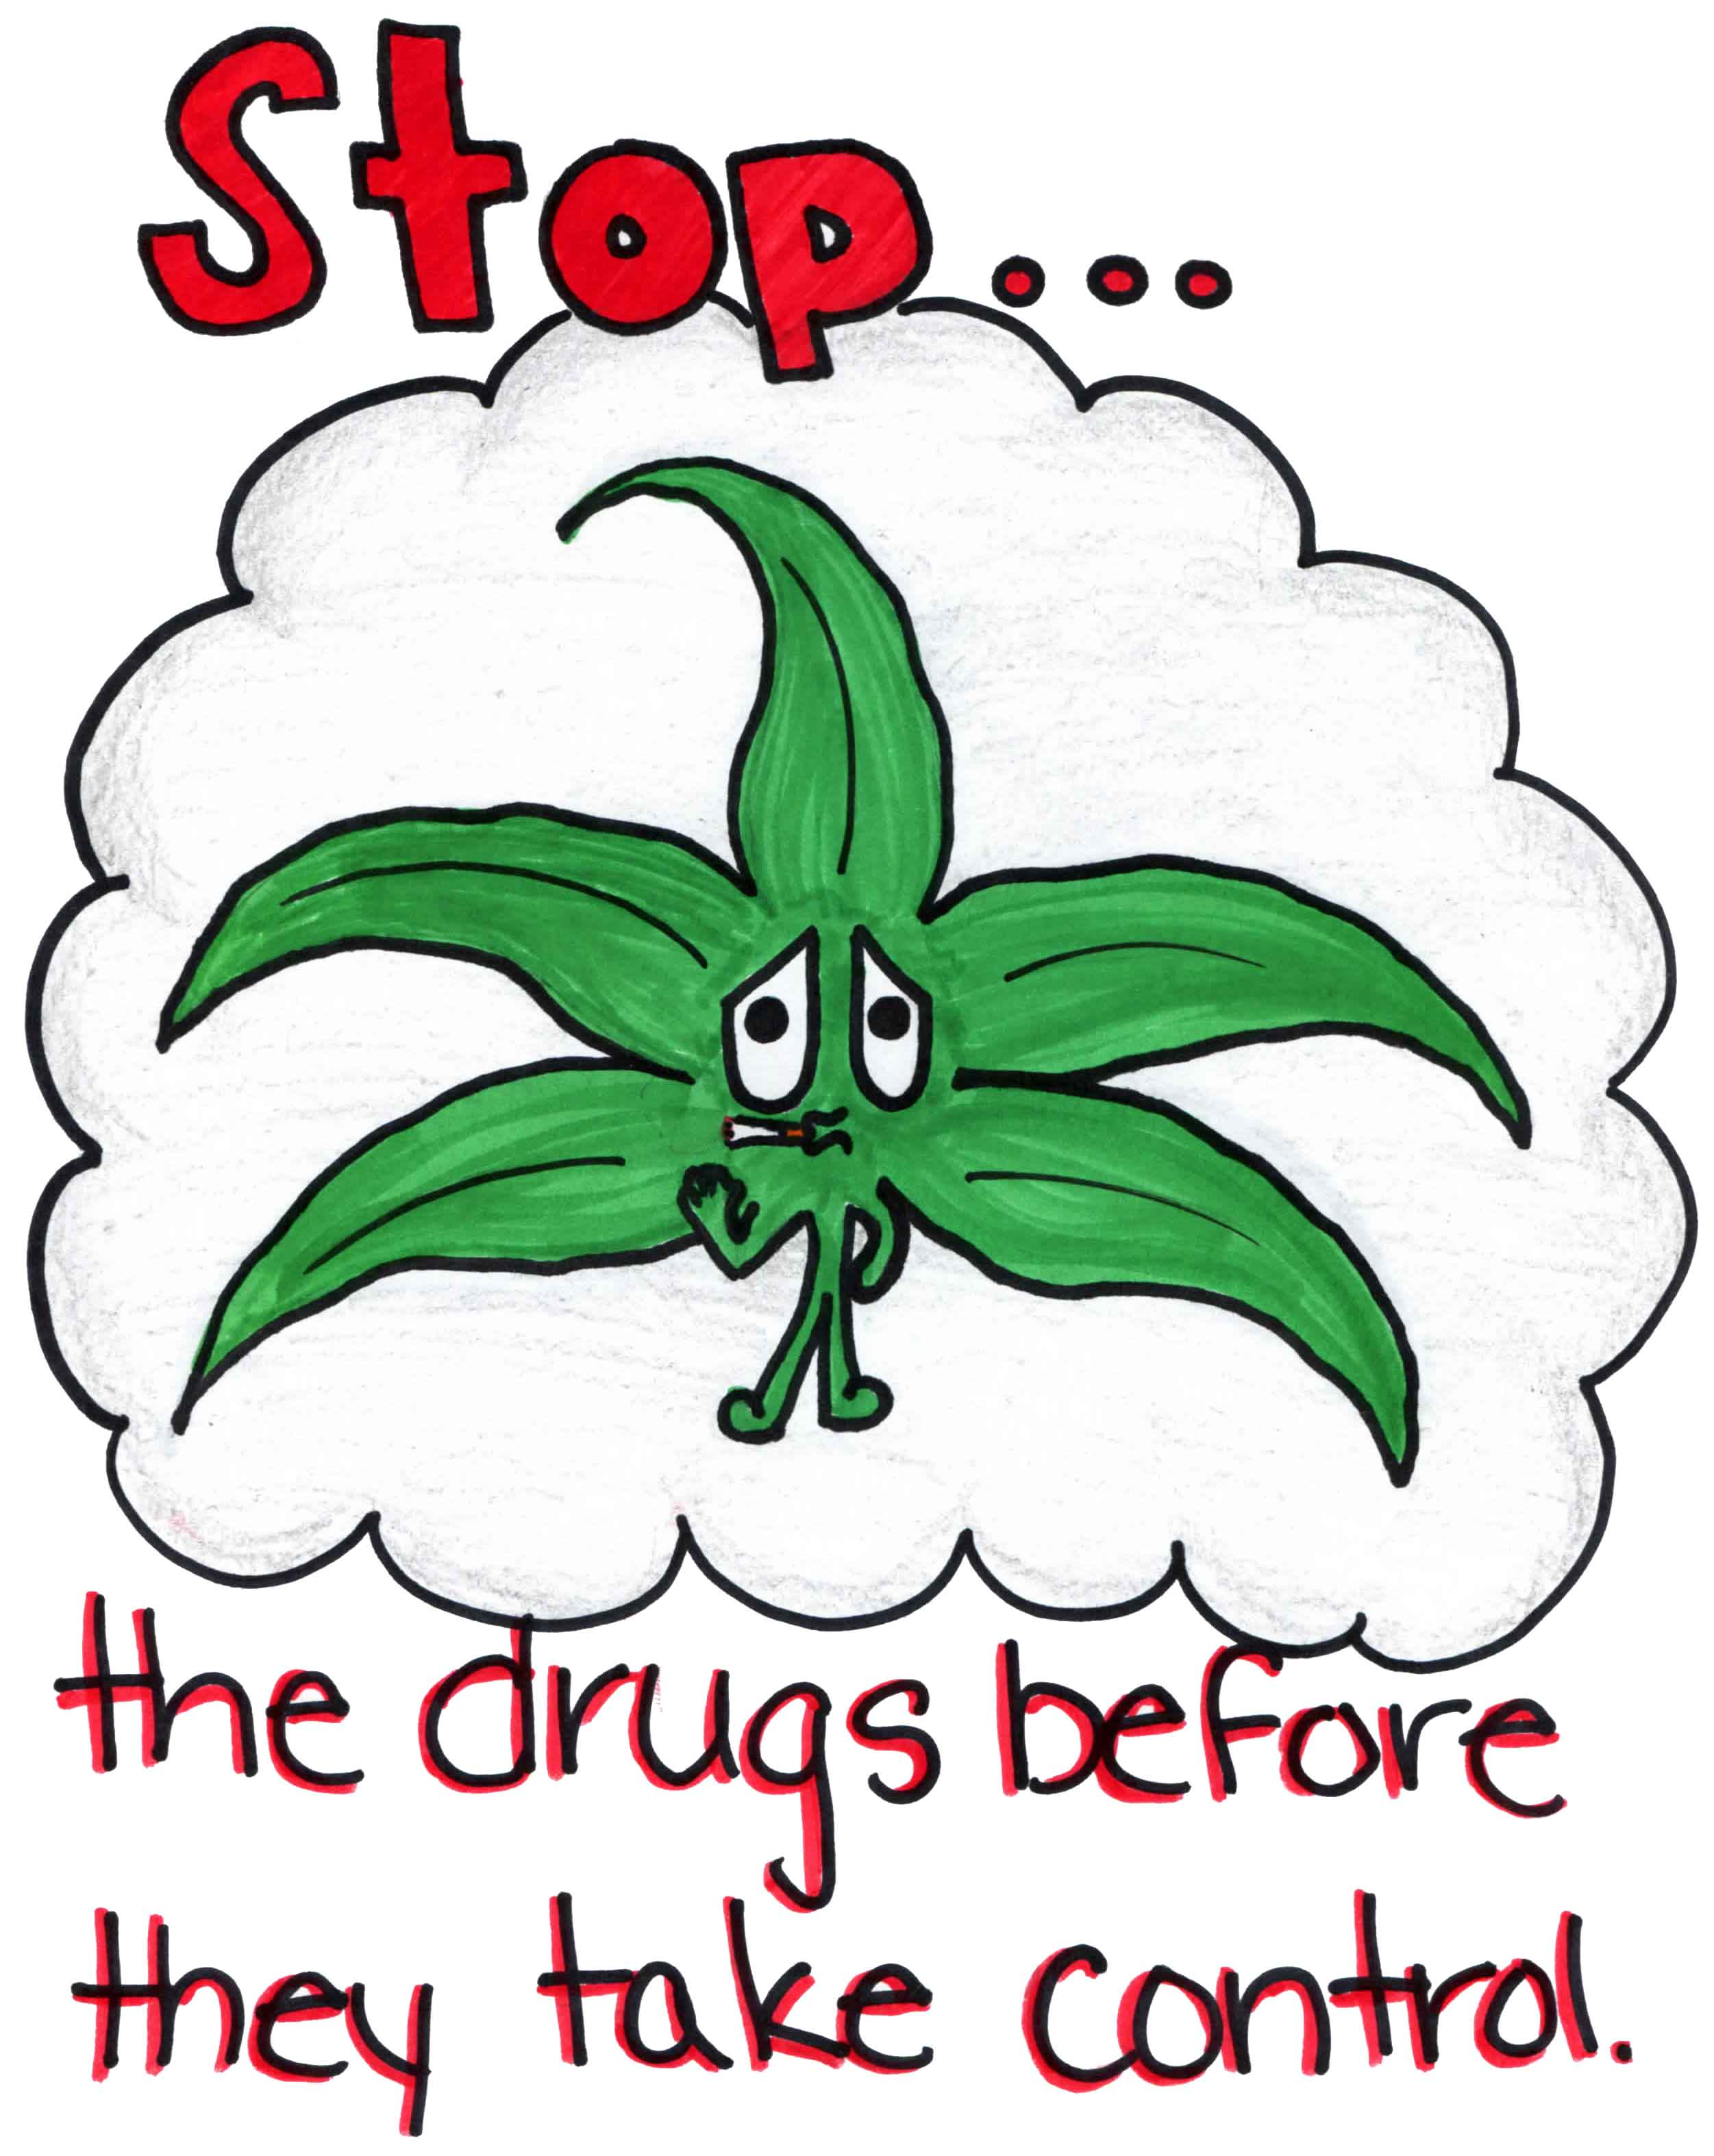 16-stop-the-drugs-before-they-take-control